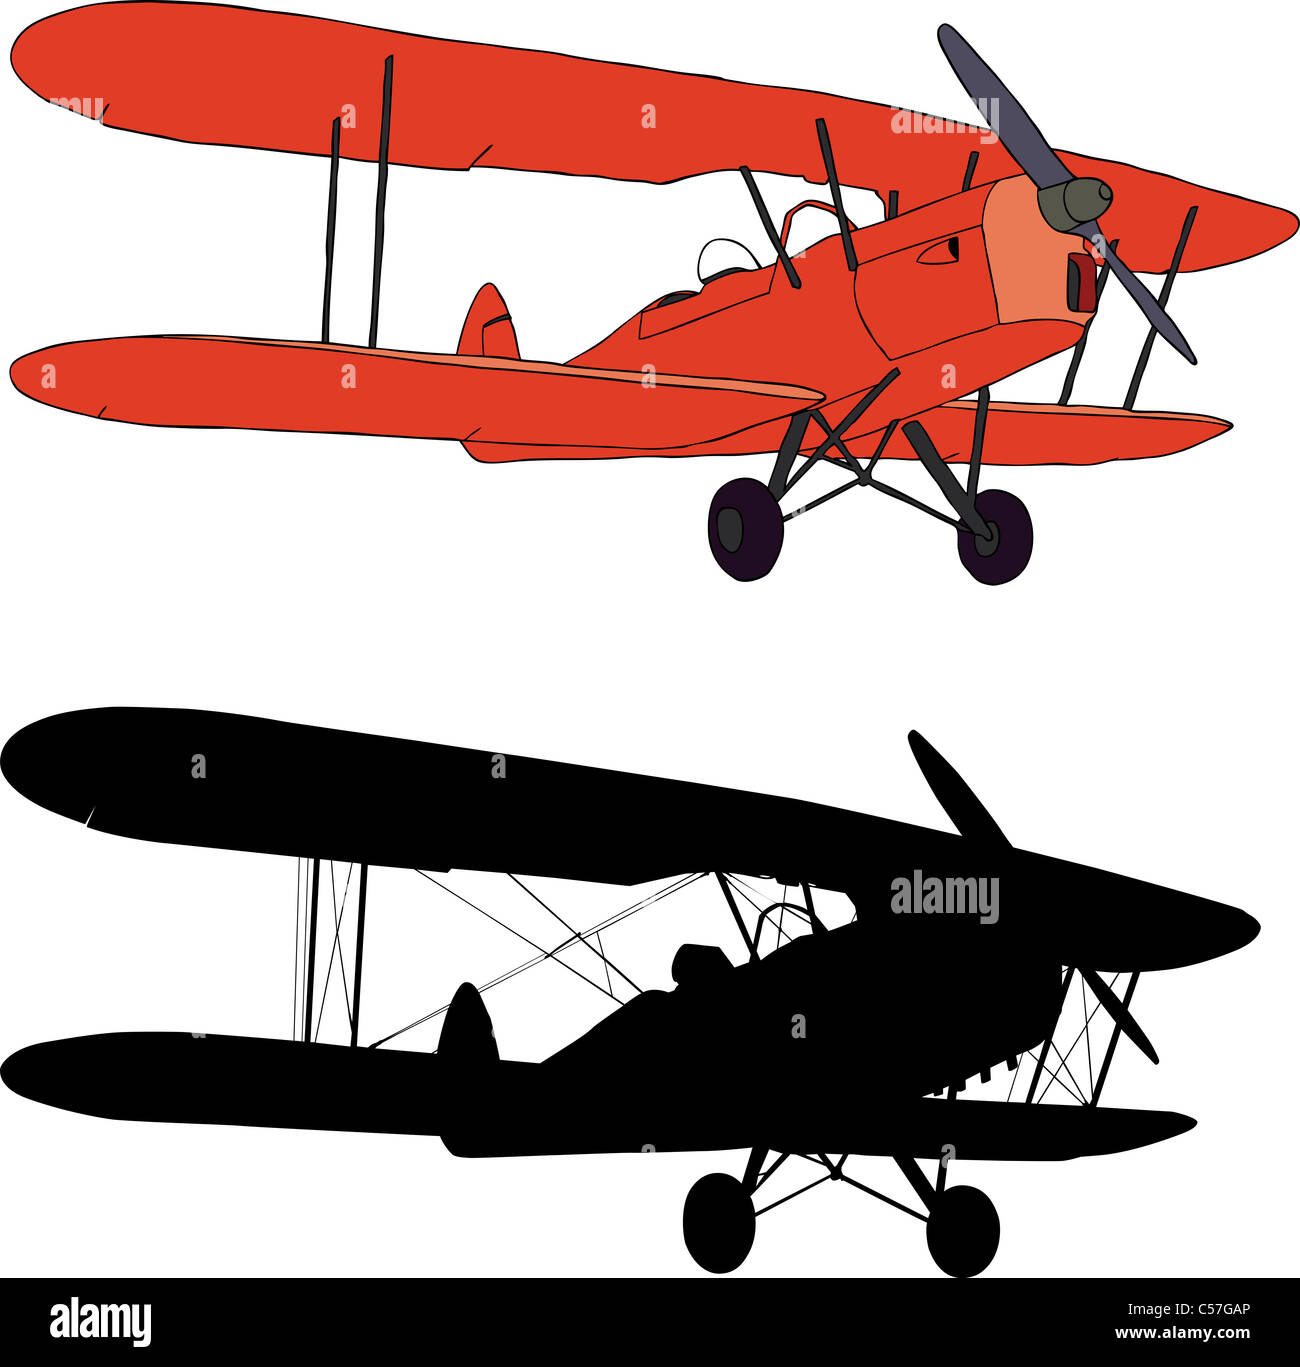 Vector Illustration And Silhouette Of An Old Biplane